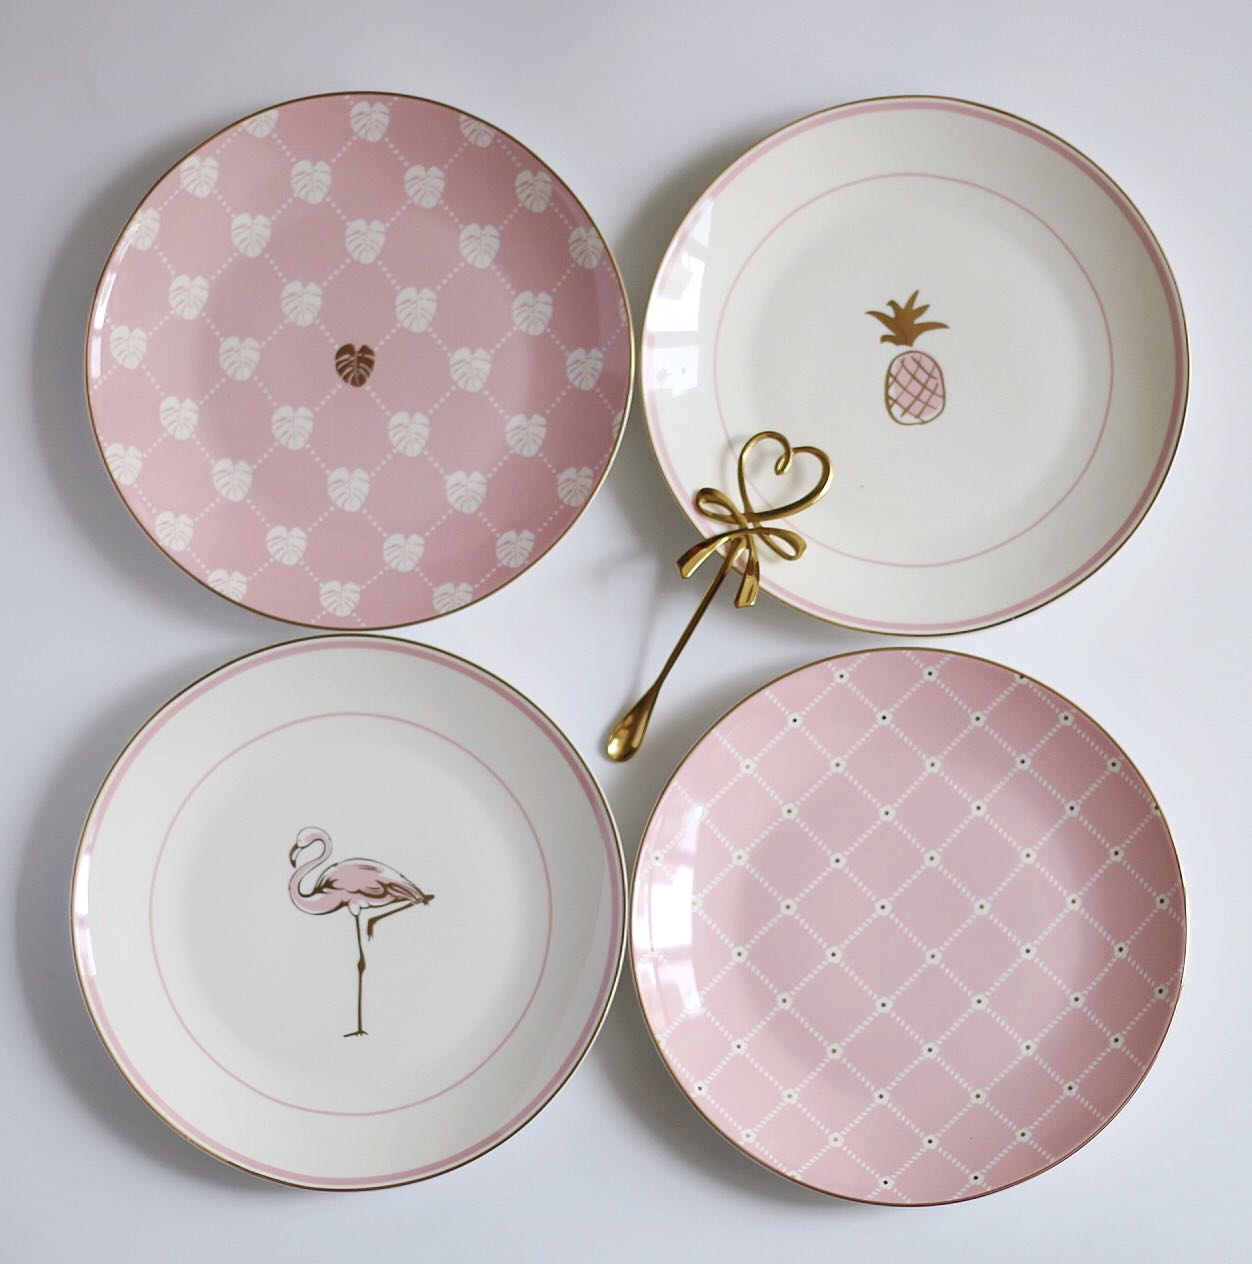 Gold Inlay Ceramic Plates Food Dishes Cookie Dessert Plate dinner plate snack tray dinnerware set